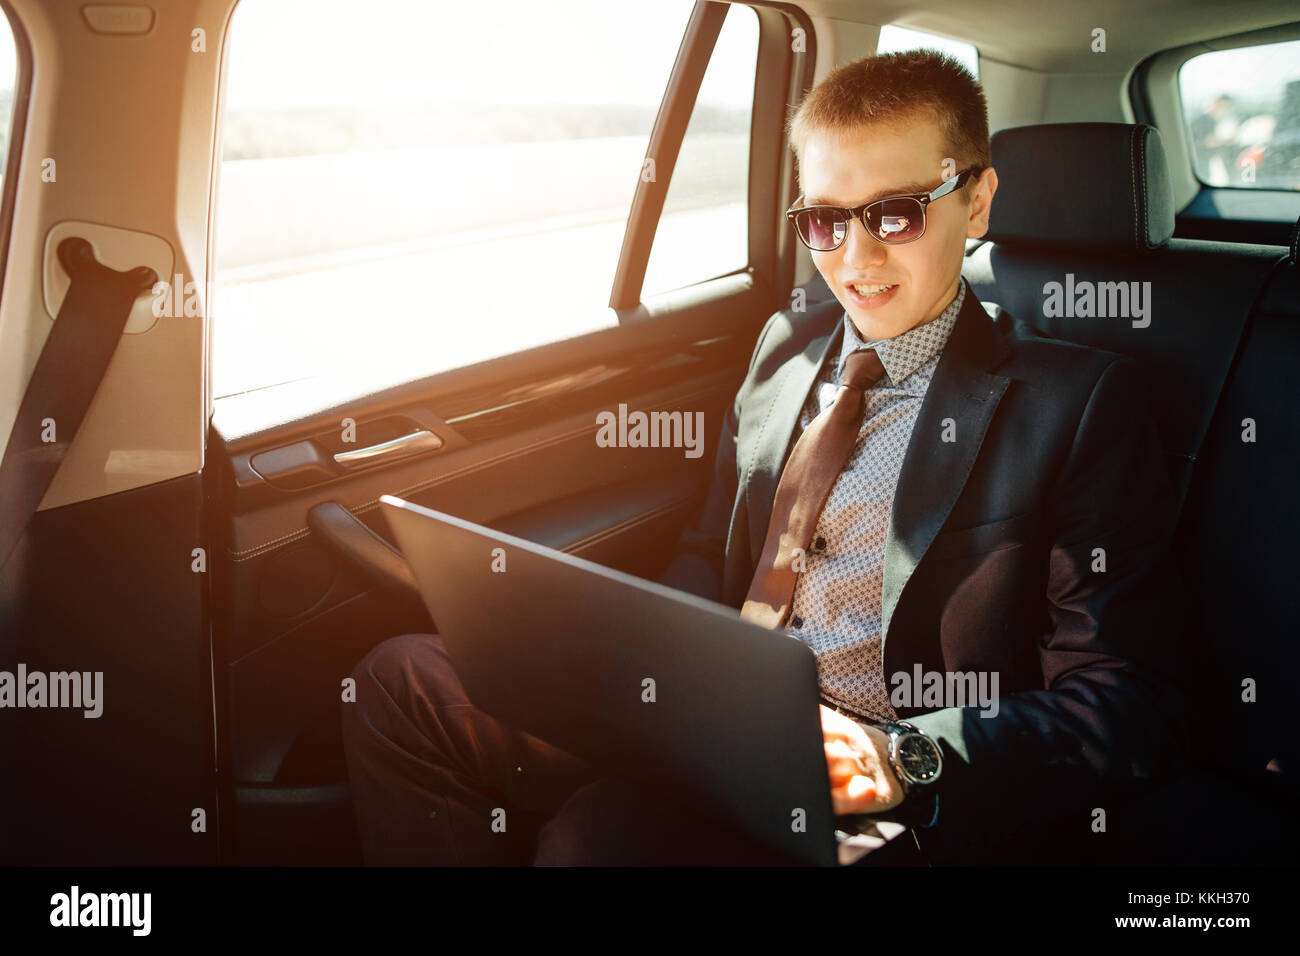 Focusing on work. businessman working on laptop while sitting on back seat car Stock Photo